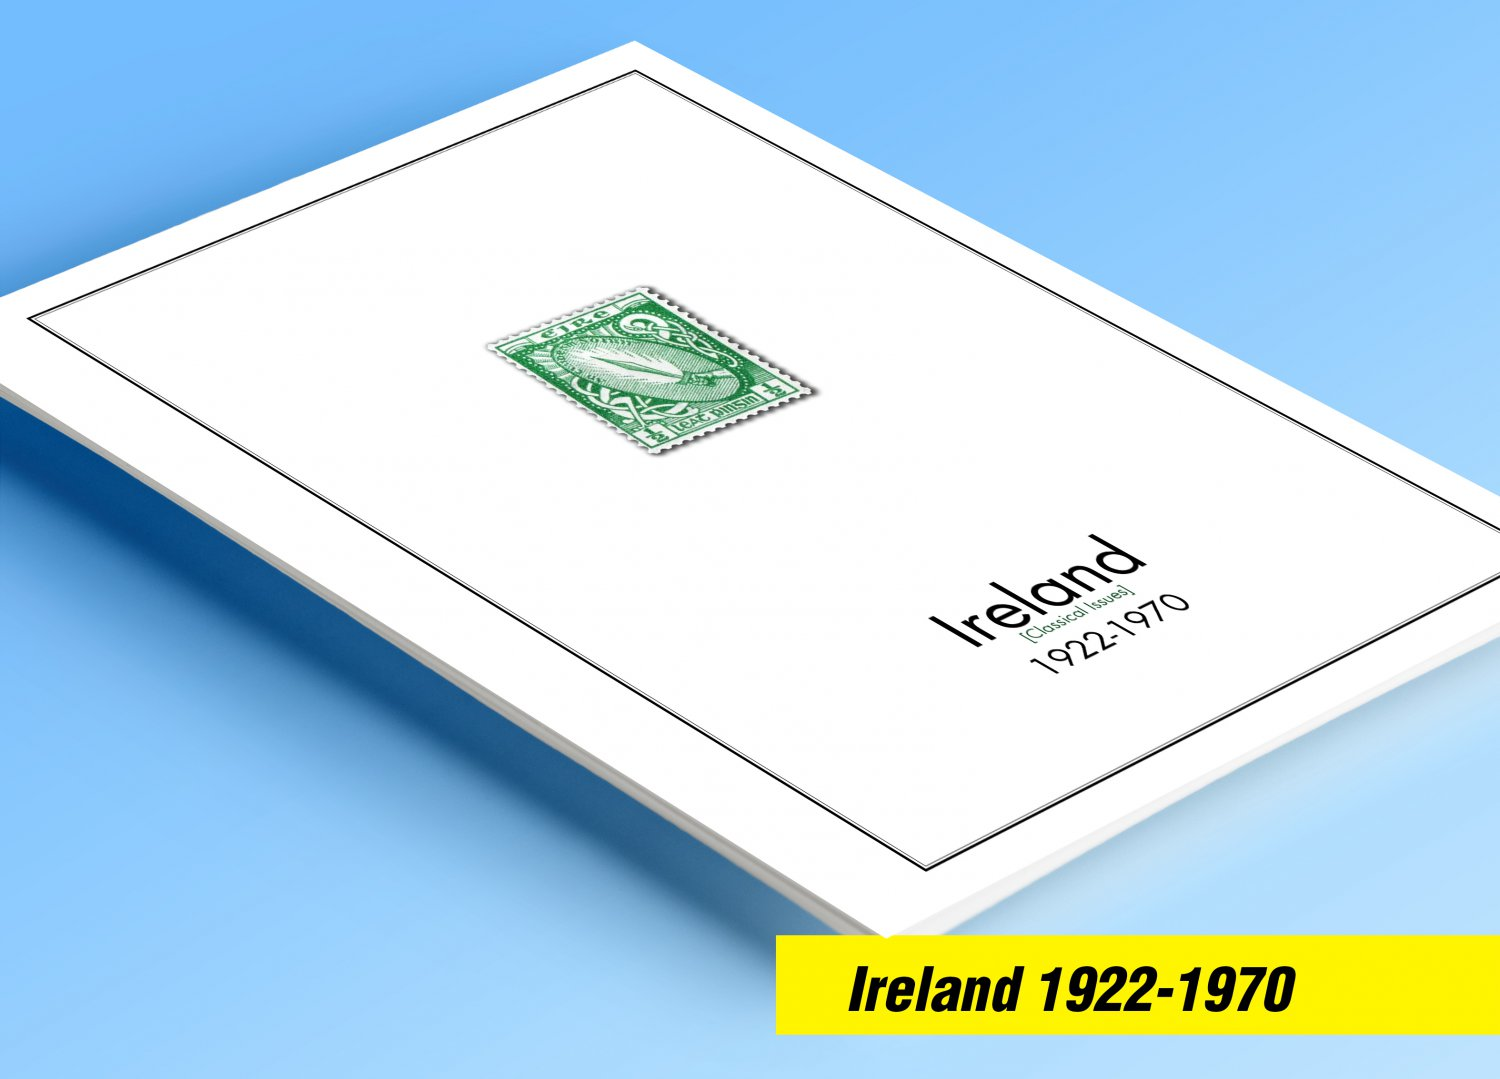 COLOR PRINTED IRELAND [CLASS.] 1922-1970 STAMP ALBUM PAGES (13 illustrated pages)